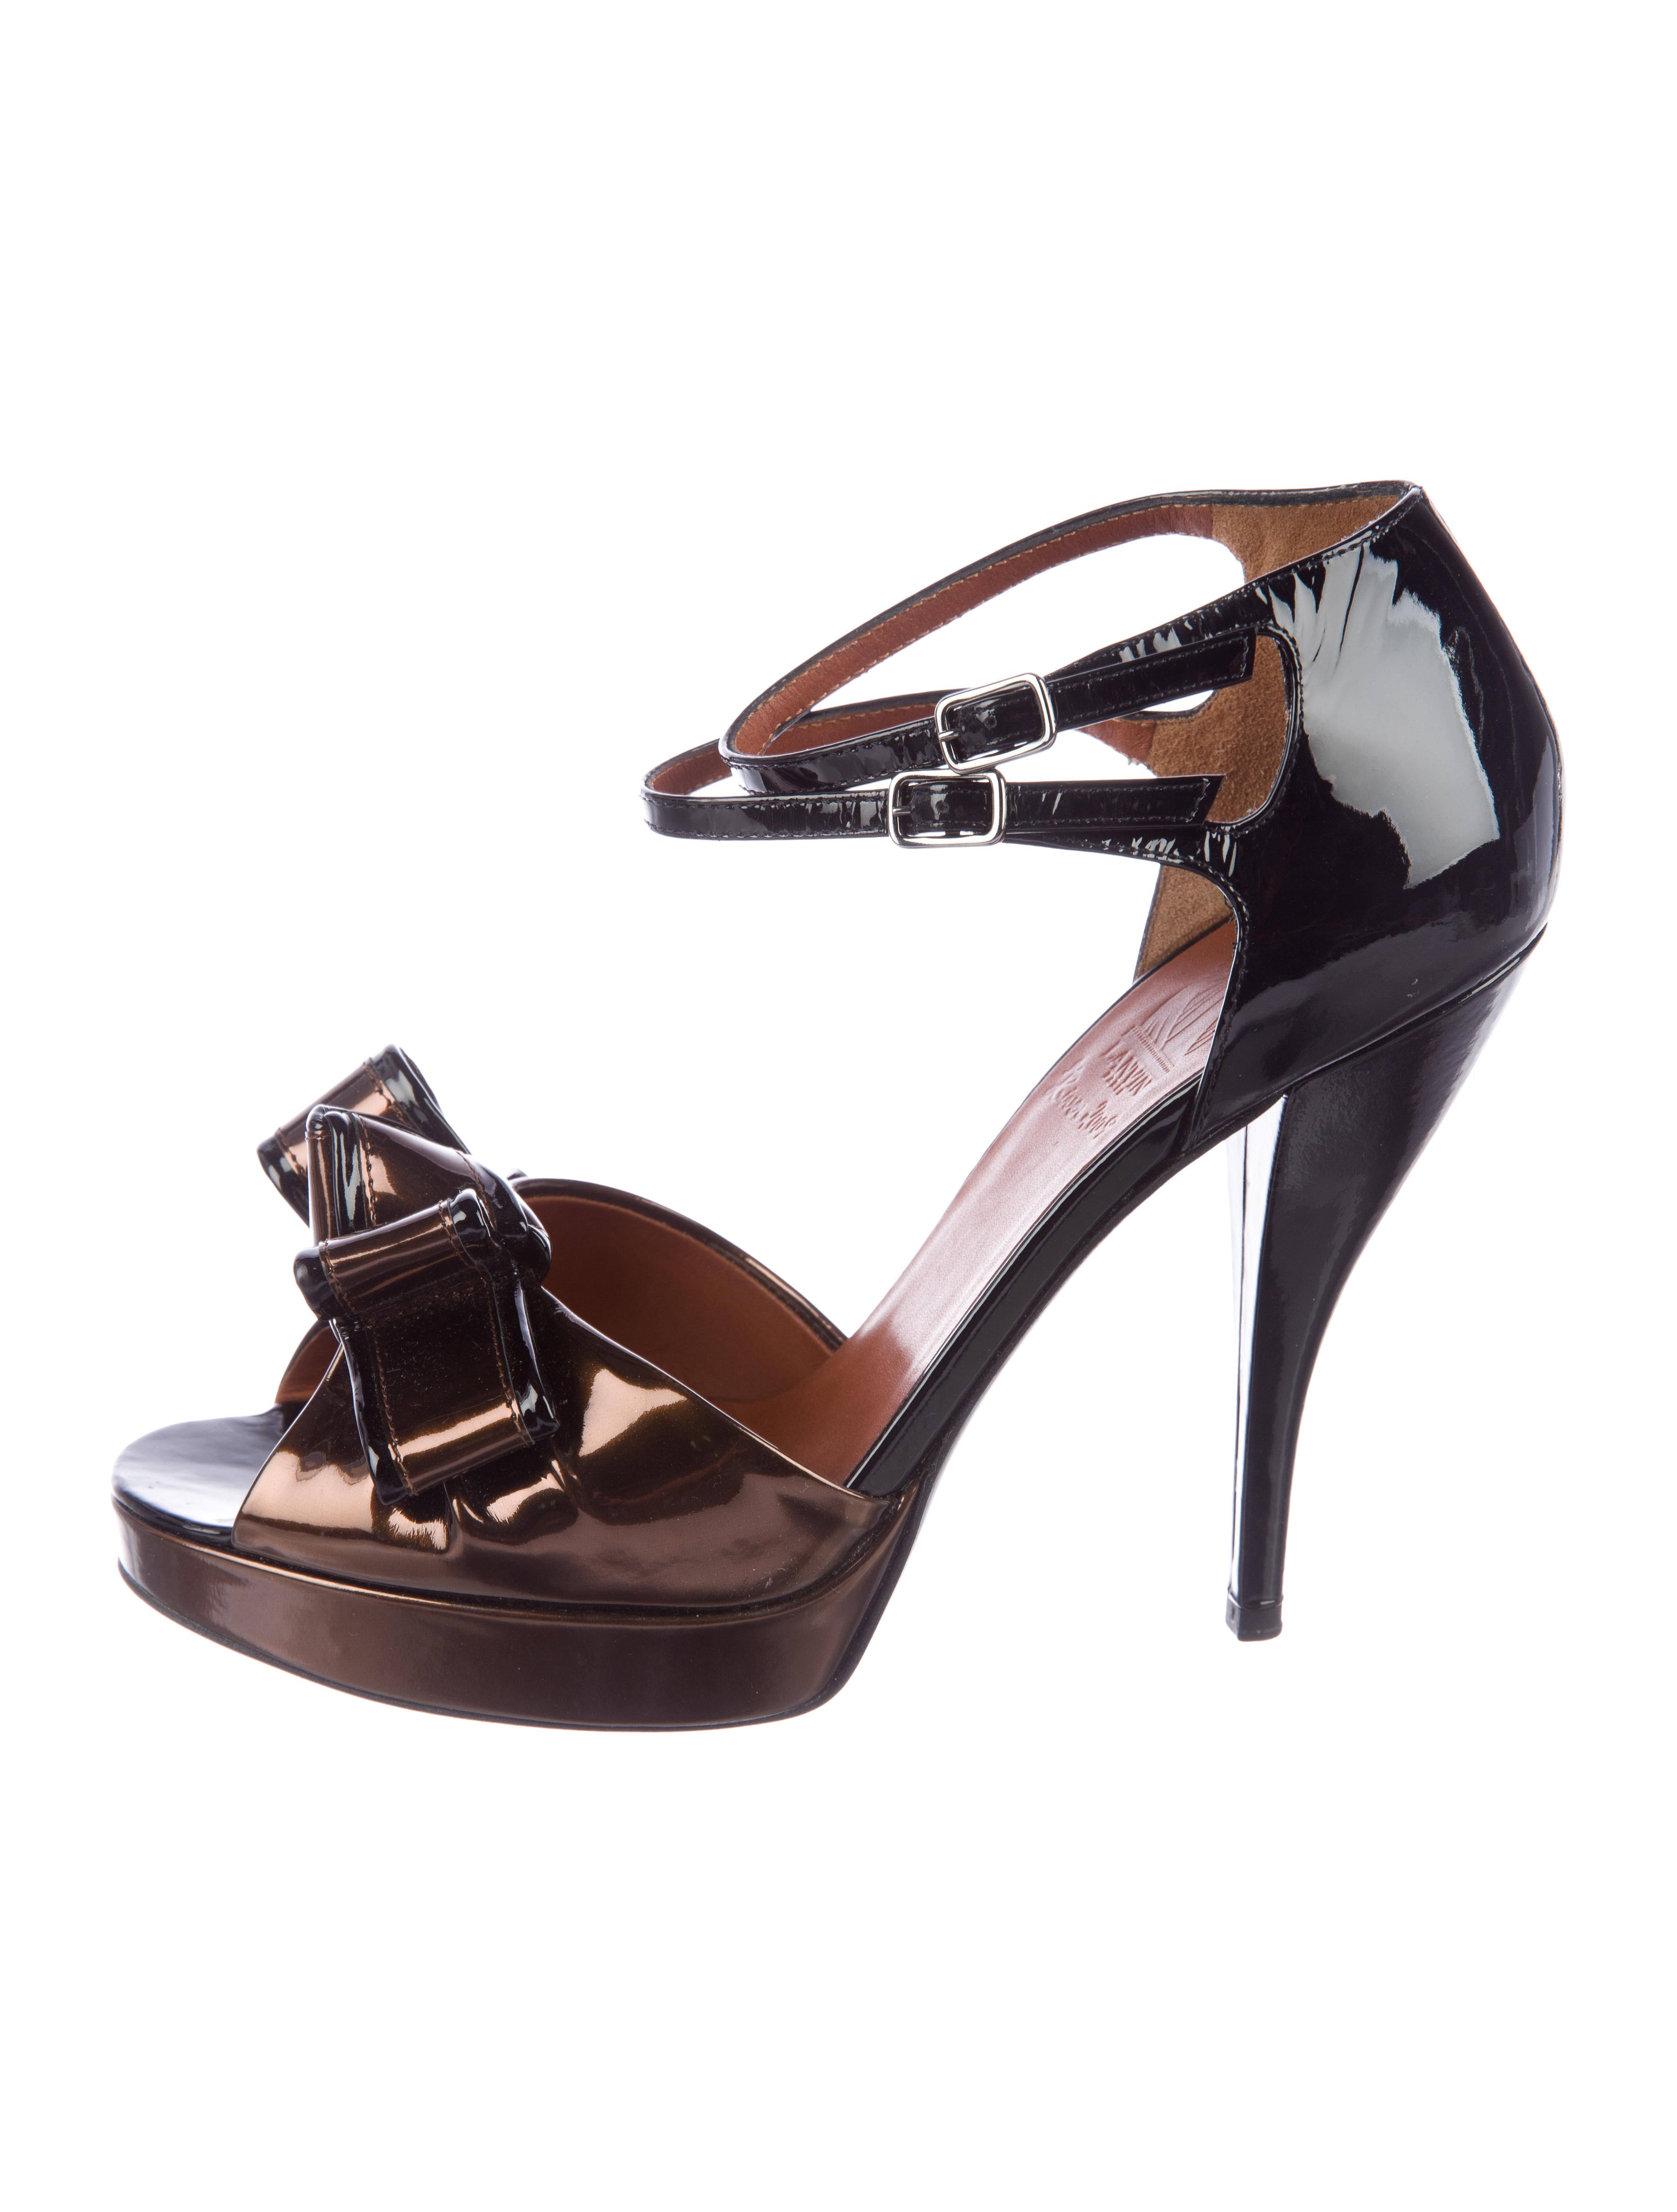 Lanvin Patent Leather Bow-Accented Sandals latest free shipping outlet outlet store online top quality quality free shipping ScRRXP